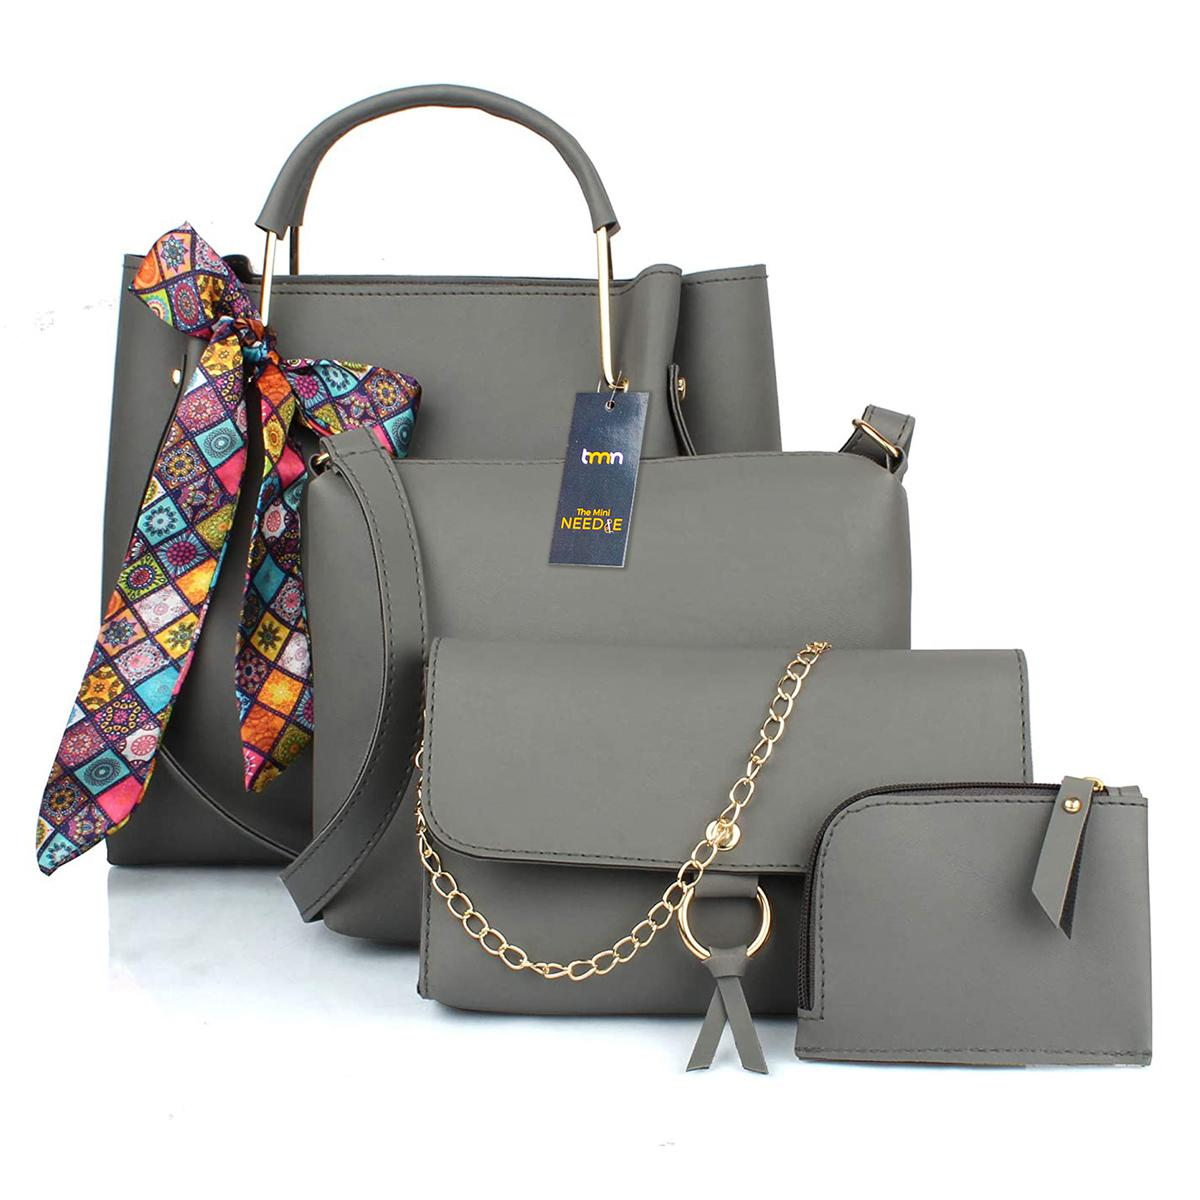 TMN - Mini Needle Combo Of Grey Ribbon Handbag With Sling Bag And Golden Chain Bag And Coin  Pouch